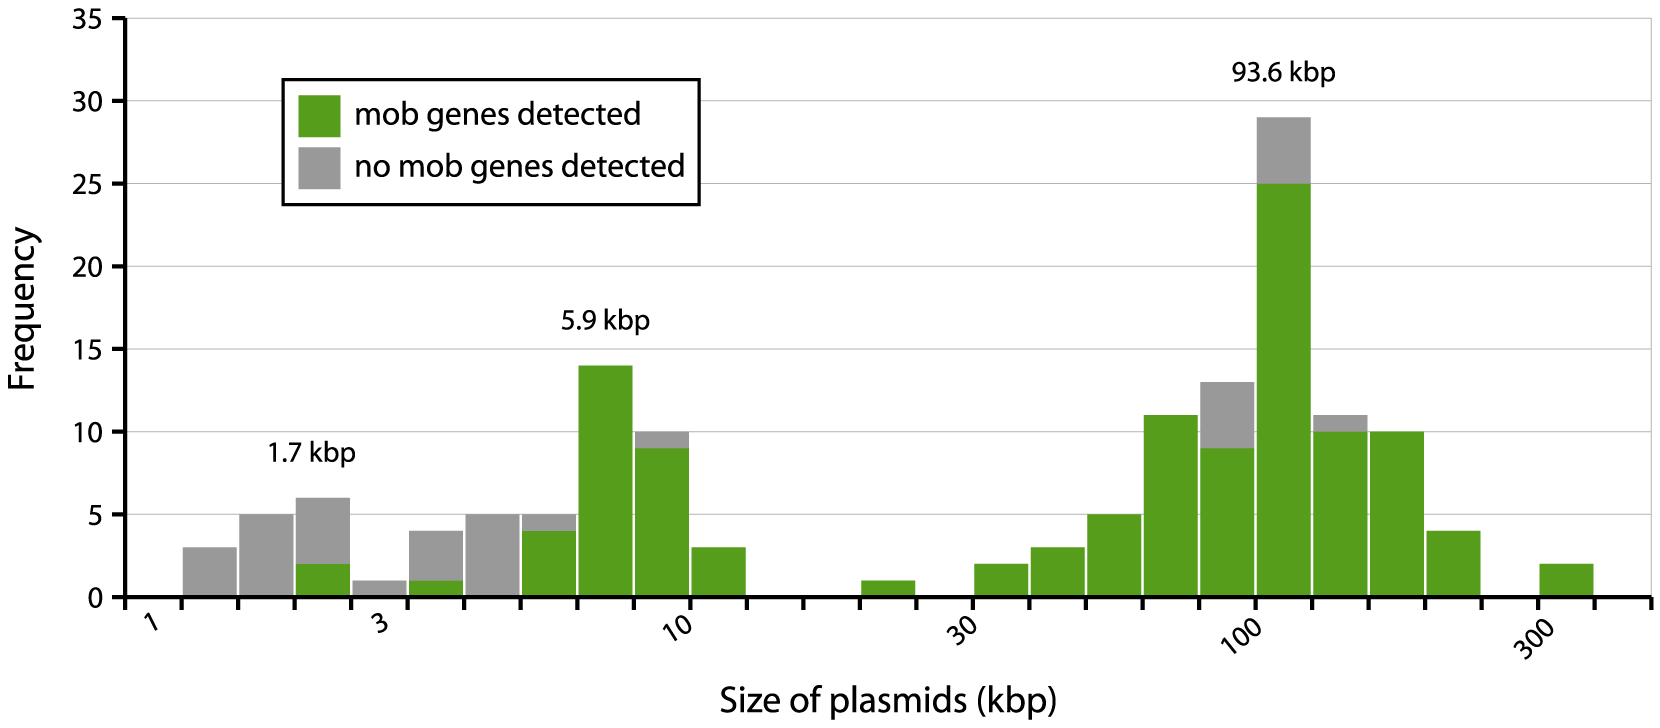 Distribution of plasmid sizes in the collection of 32 sequenced <i>E. coli</i> strains.